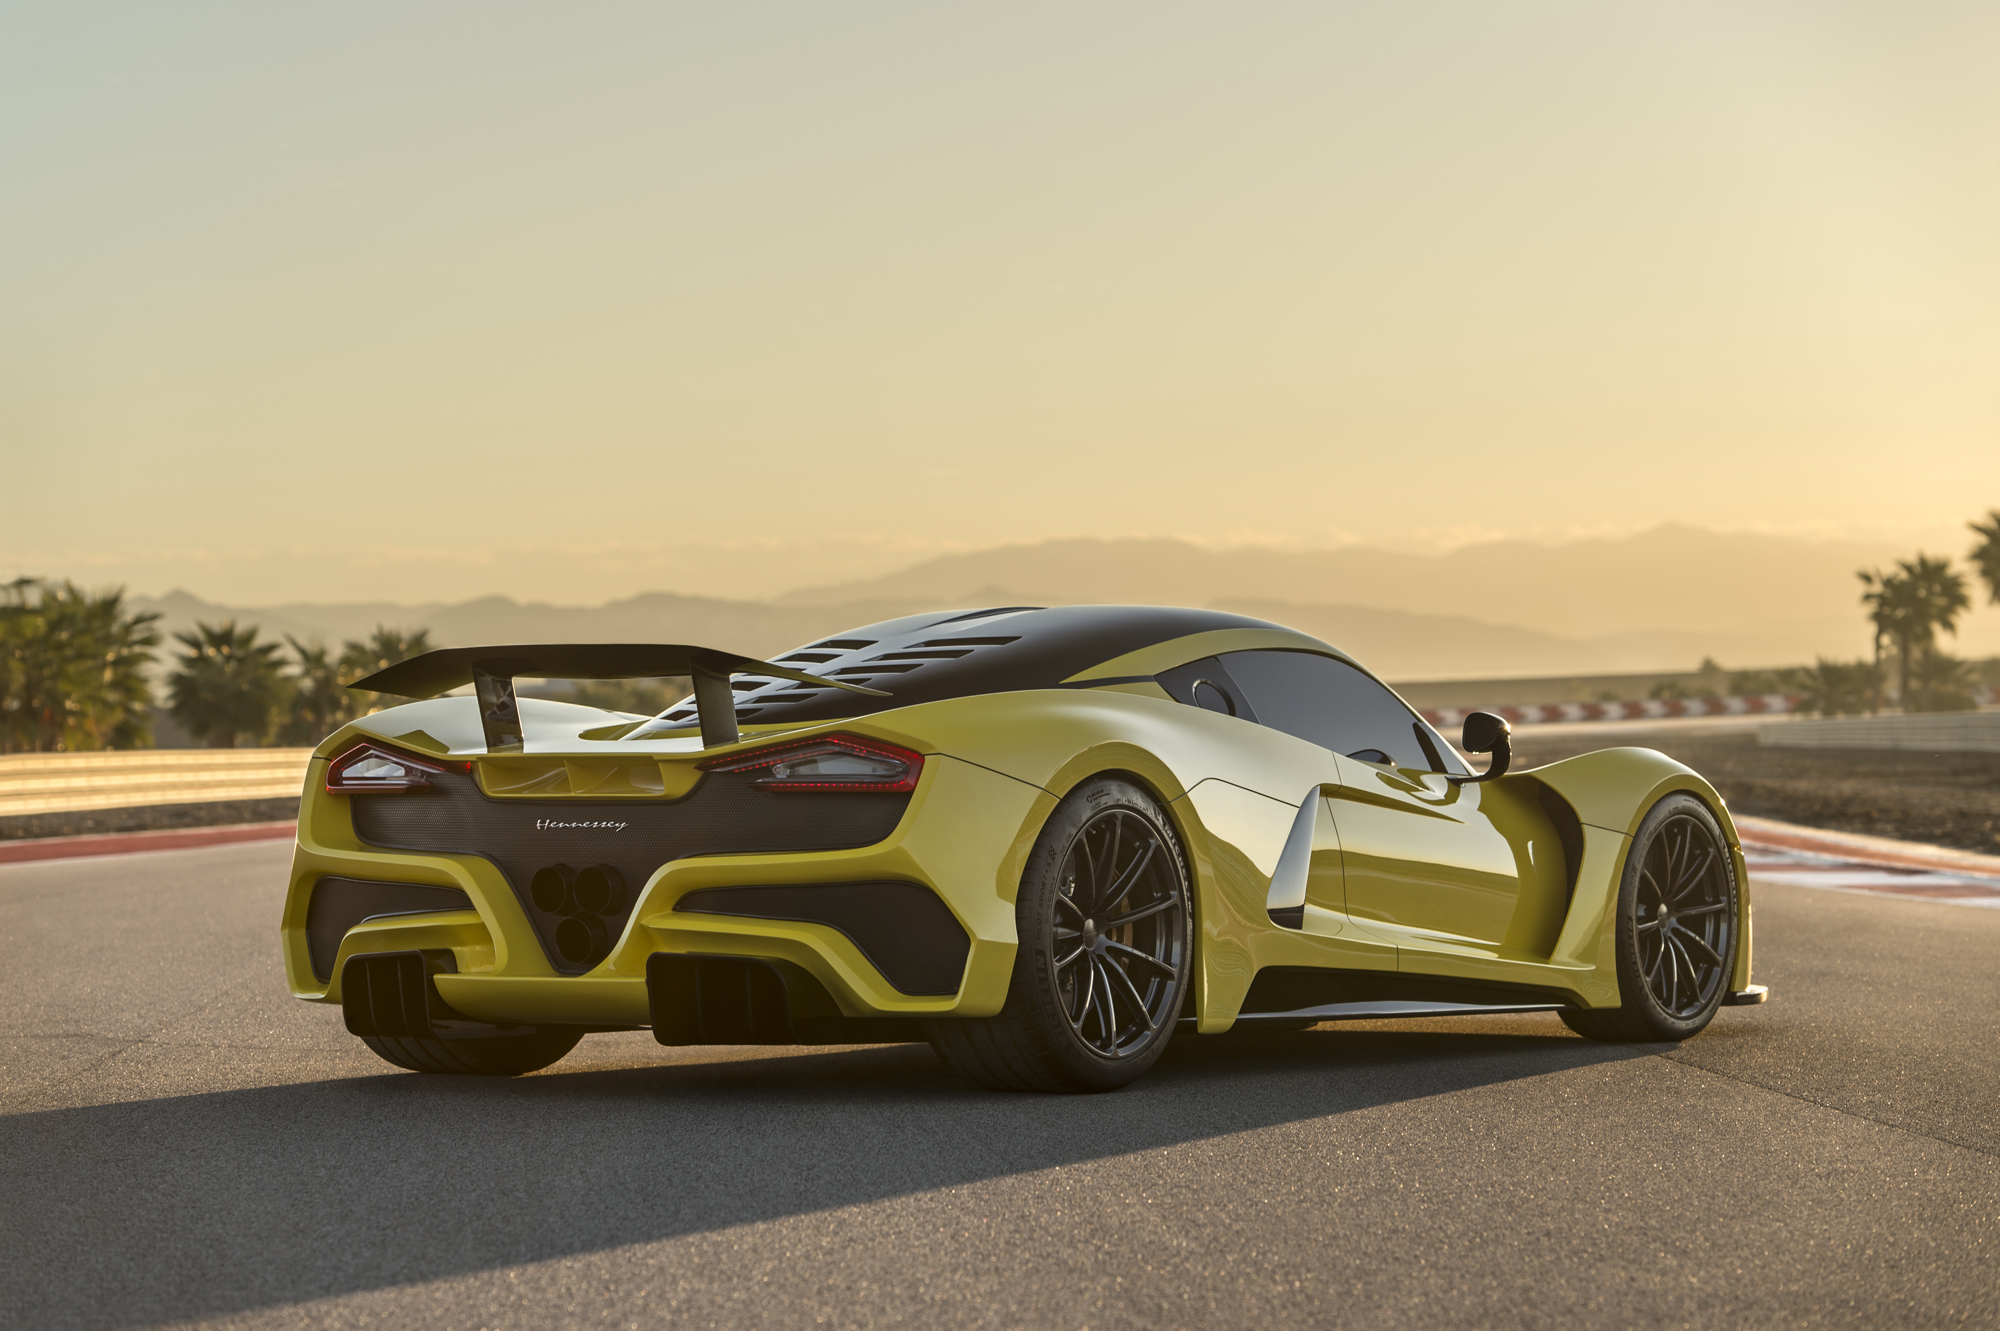 koenigsegg agera rs world records with Venomgt on venomgt also Koenigsegg Agera R Sets Guiness World Record For 0 300 0 Kmh Video together with 2018 Toronto Auto Show moreover Koenigsegg Agera R Sets Guiness World Record For 0 300 0 Kmh Video additionally koenigsegg.